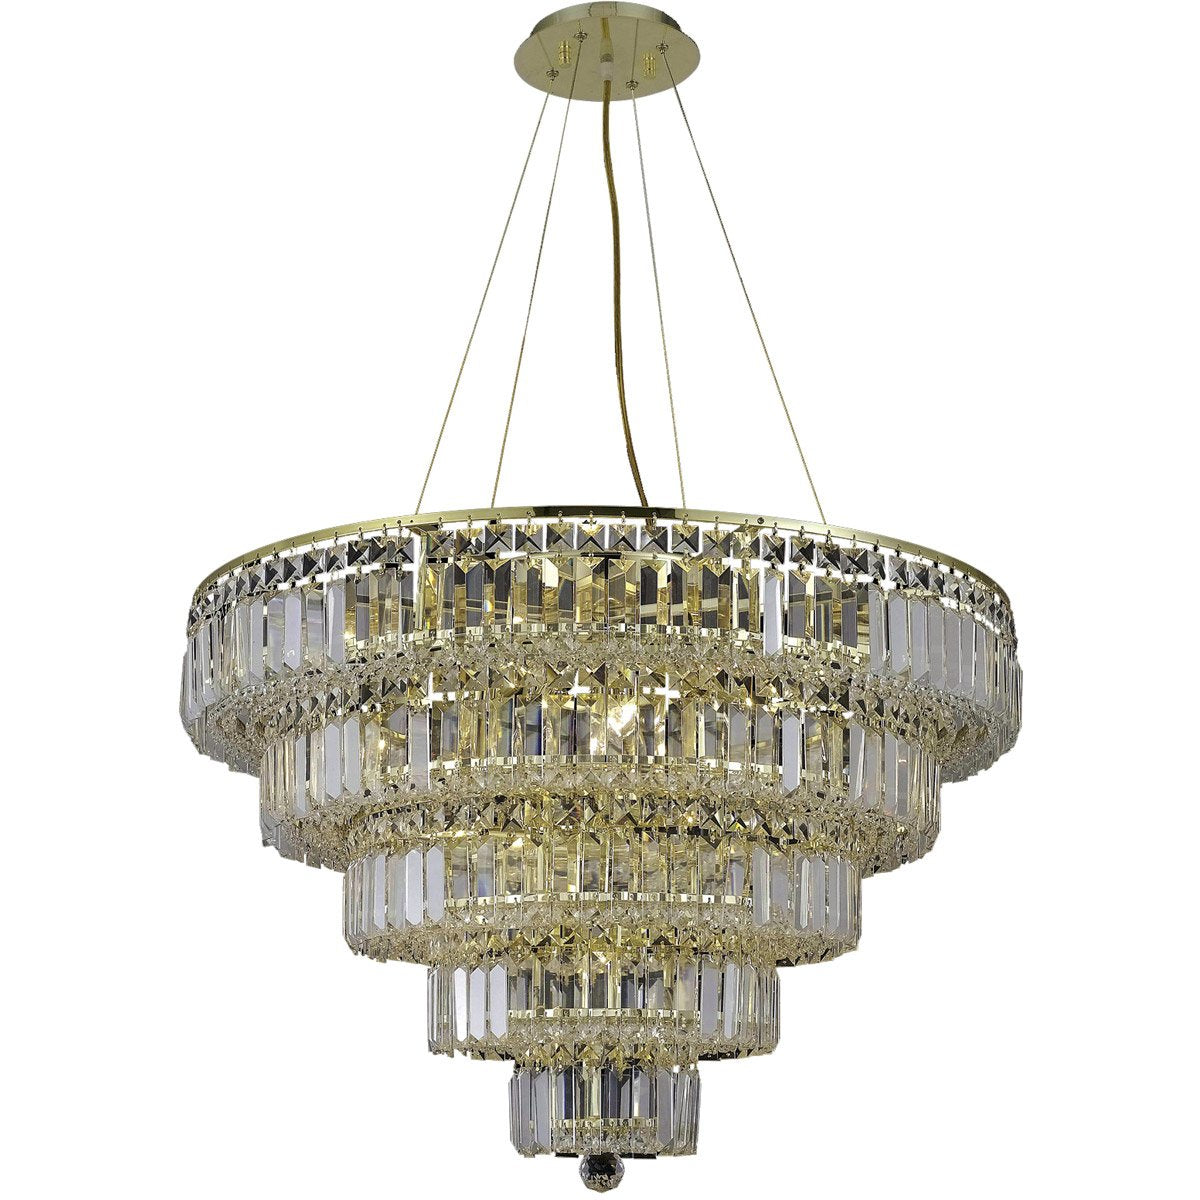 Maxime 30 Crystal Chandelier With 17 Lights - Gold Finish And Clear / Elegant Cut Crystal Chandelier